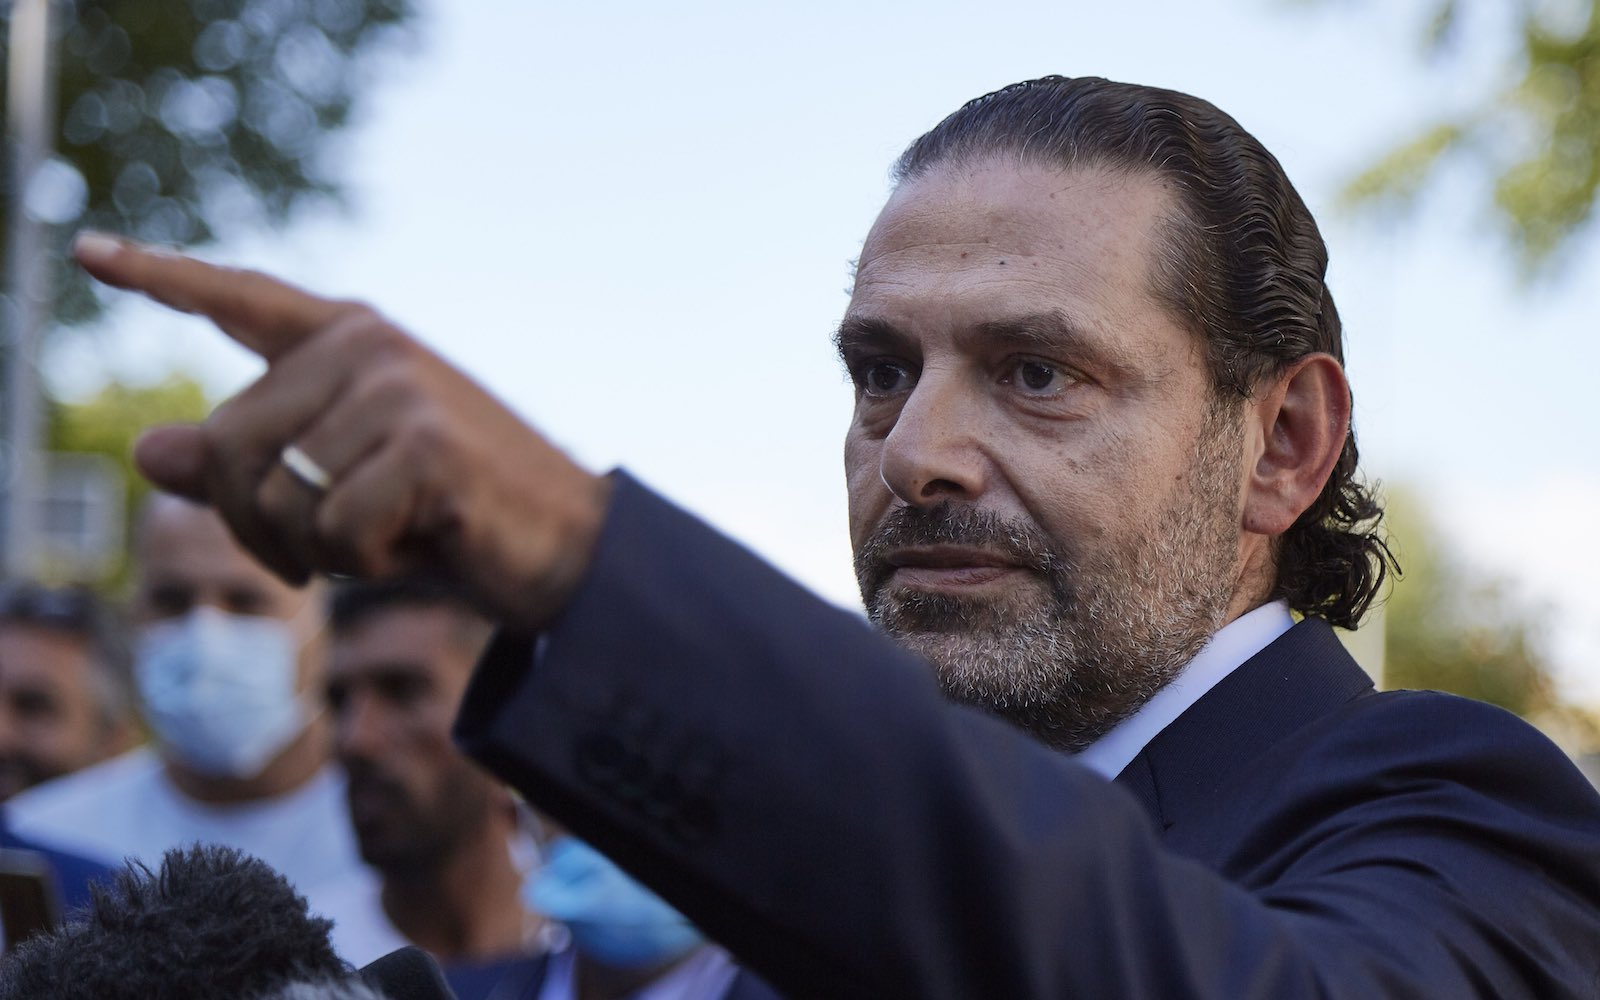 Former Lebanese Prime Minister Saad Hariri, son of Rafiq Hariri,  outside the Lebanon Tribunal, 18 August 2020 in The Hague (Pierre Crom/Getty Images)